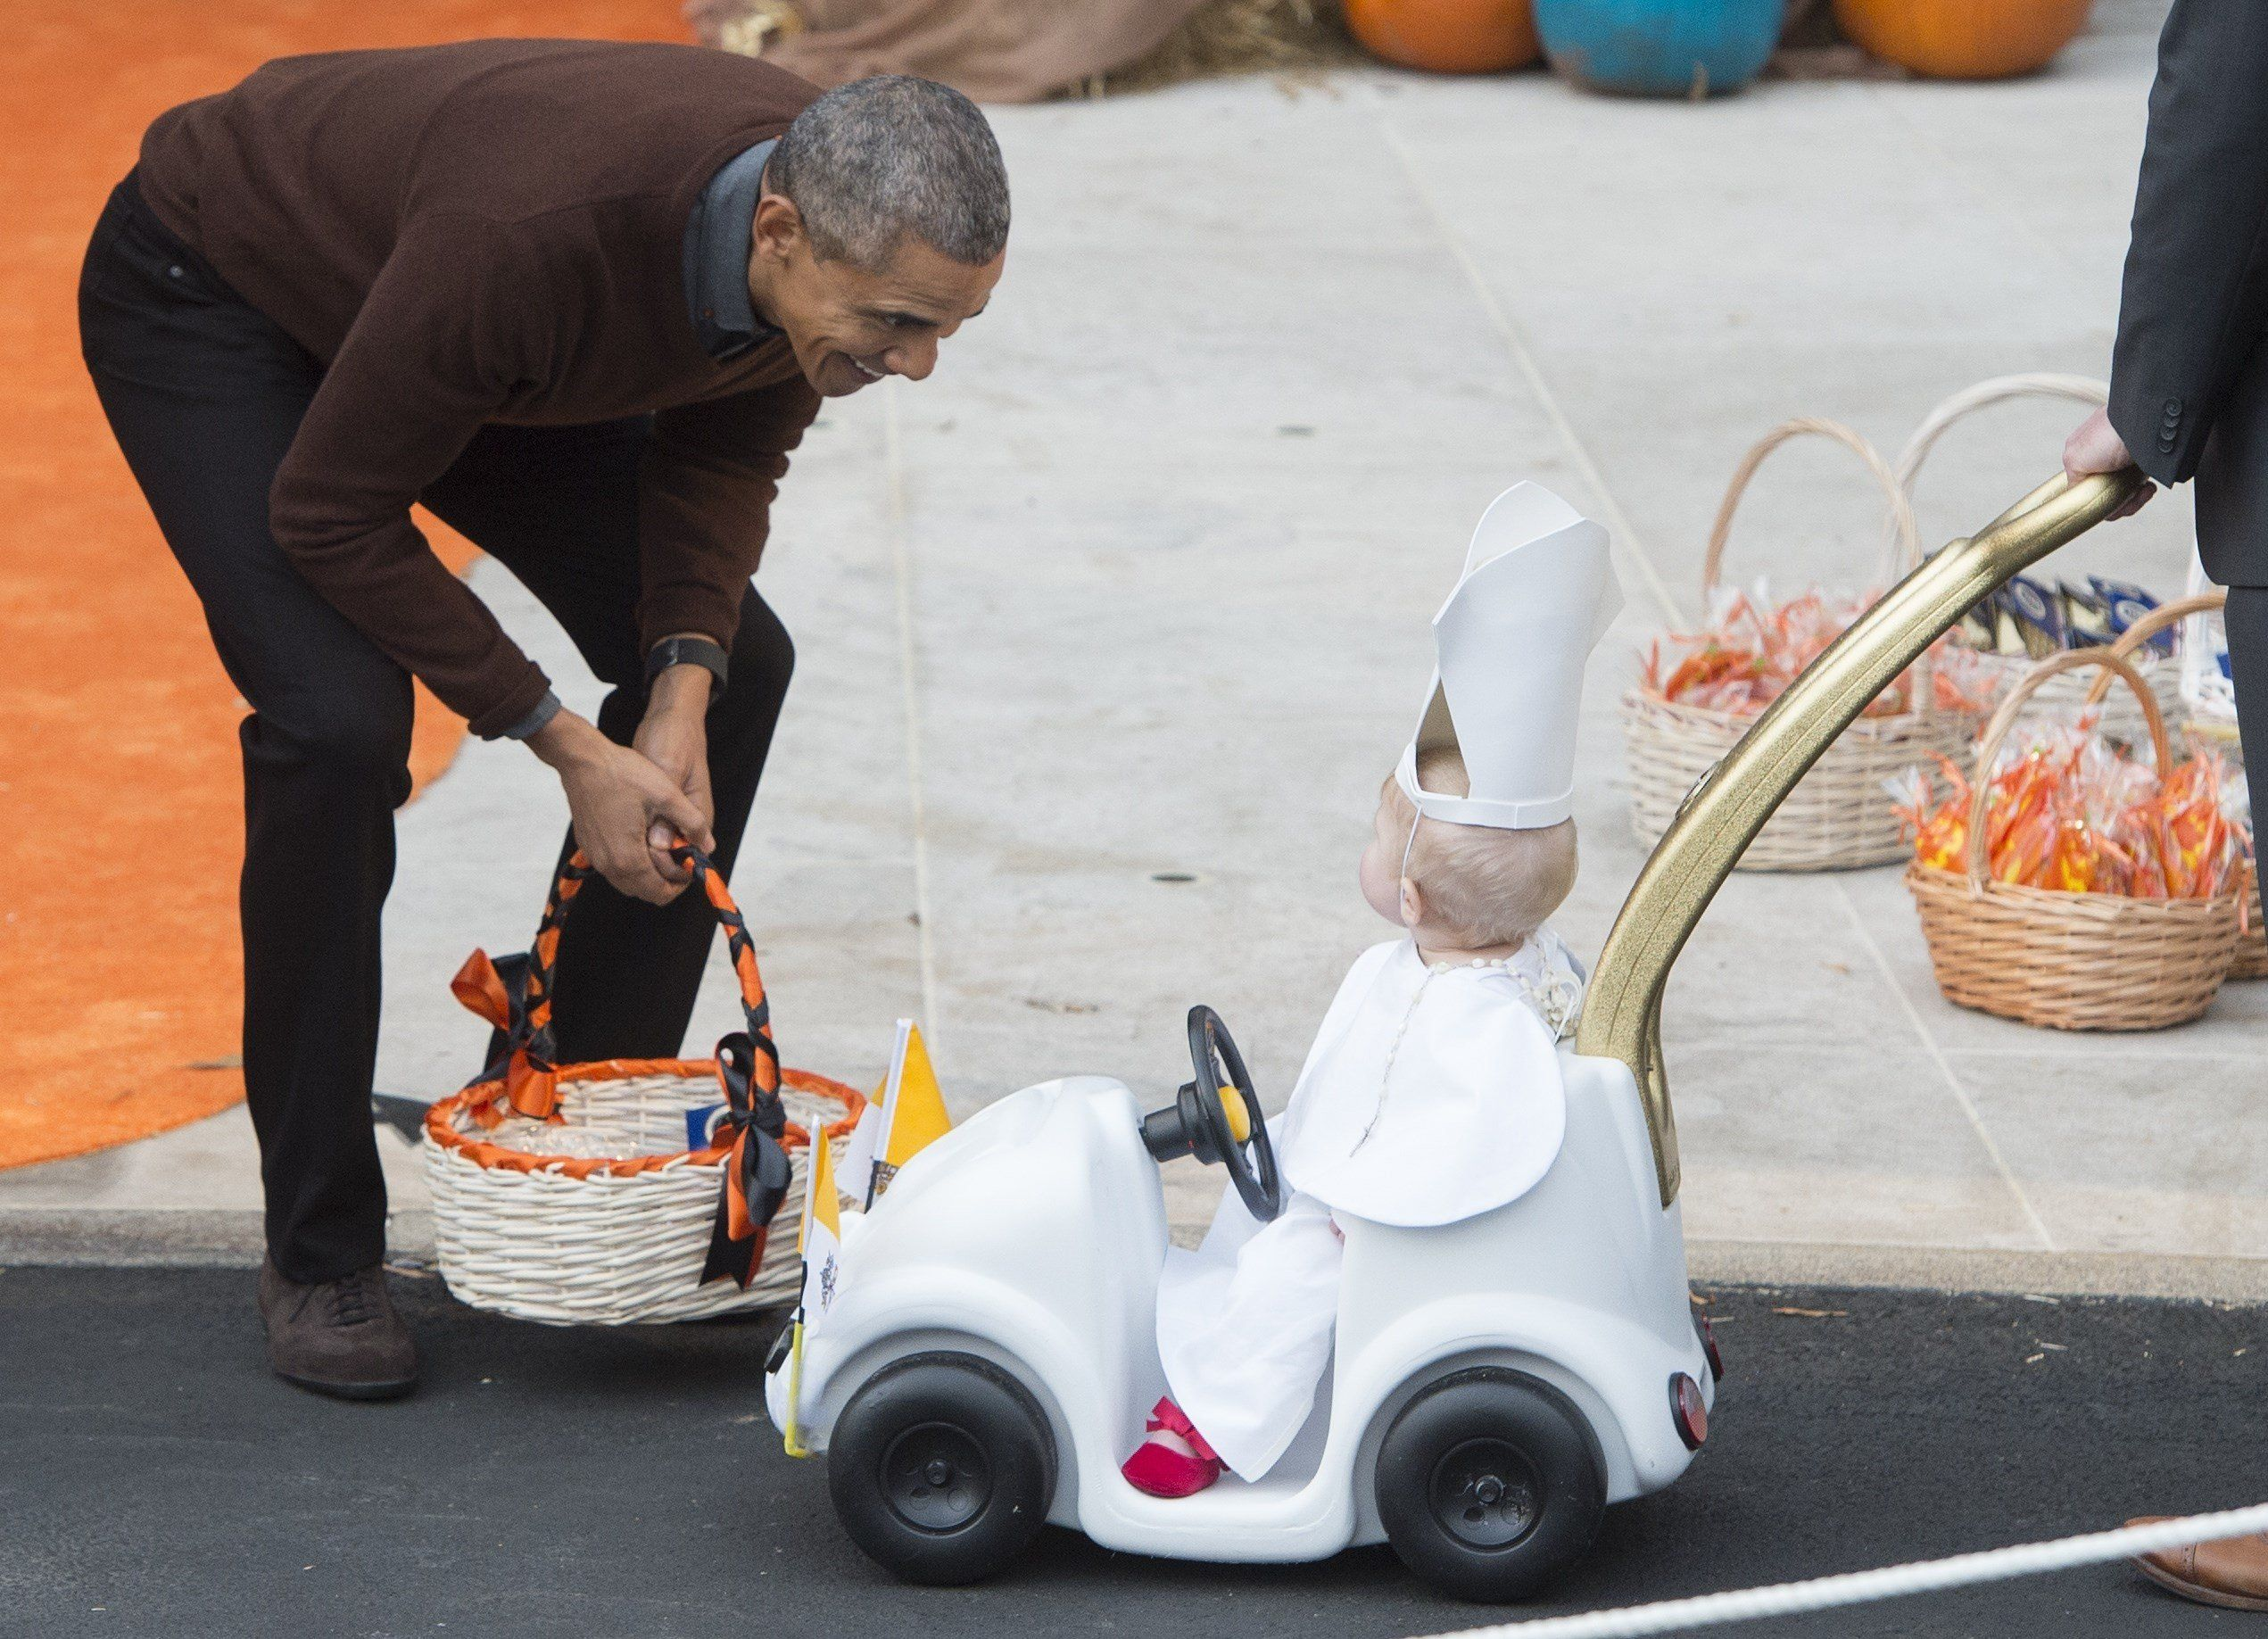 US President Barack Obama greets a young child dressed as the Pope and riding in a 'Popemobile' as he hands out treats to children trick-or-treating for Halloween on the South Lawn of the White House in Washington, DC, October 30, 2015. AFP PHOTO / SAUL LOEB        (Photo credit should read SAUL LOEB/AFP/Getty Images)